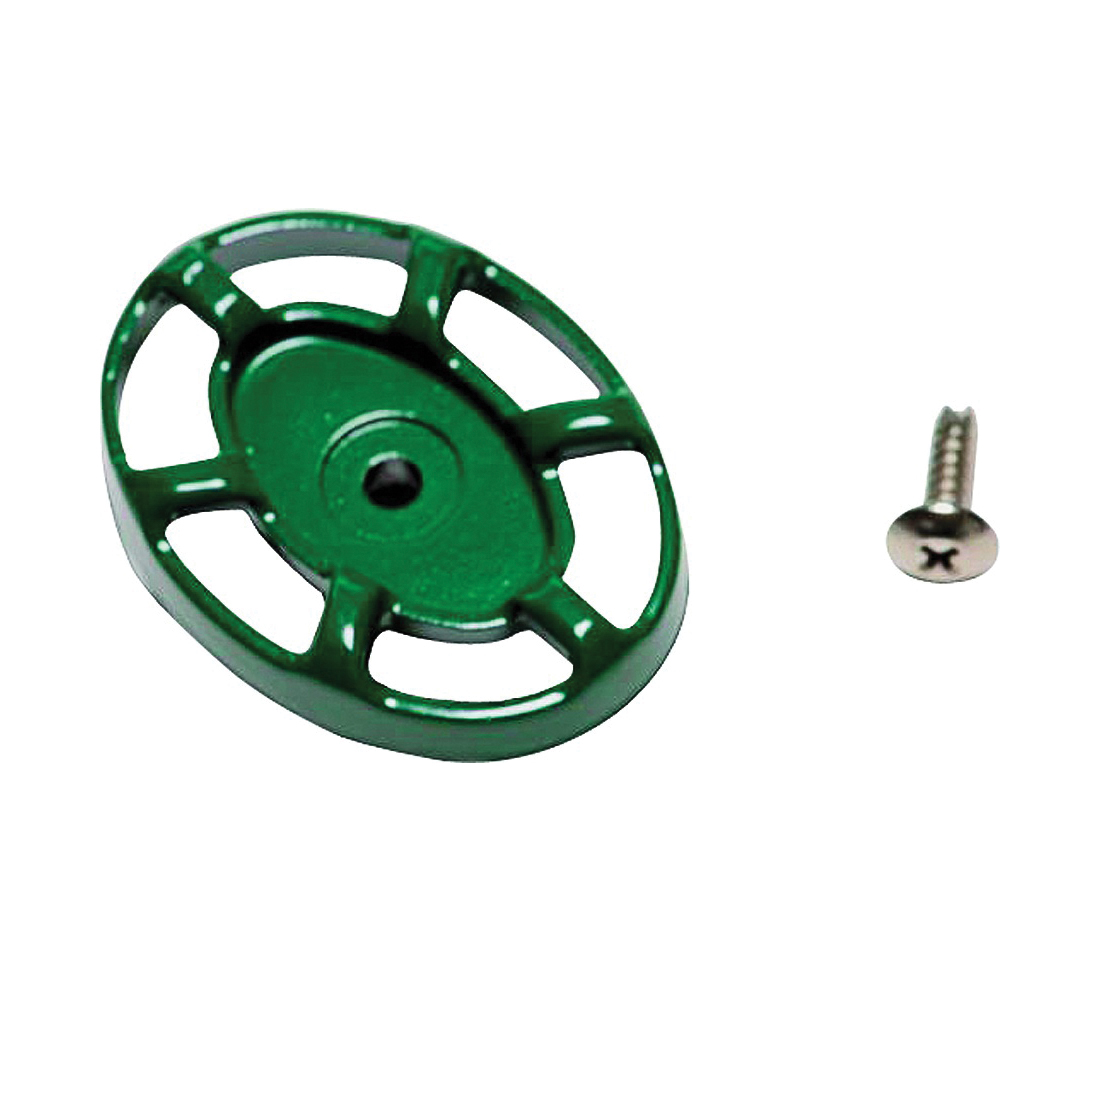 Picture of Arrowhead Brass PK1290 Sillcock Wheel Handle with Screw, Aluminum